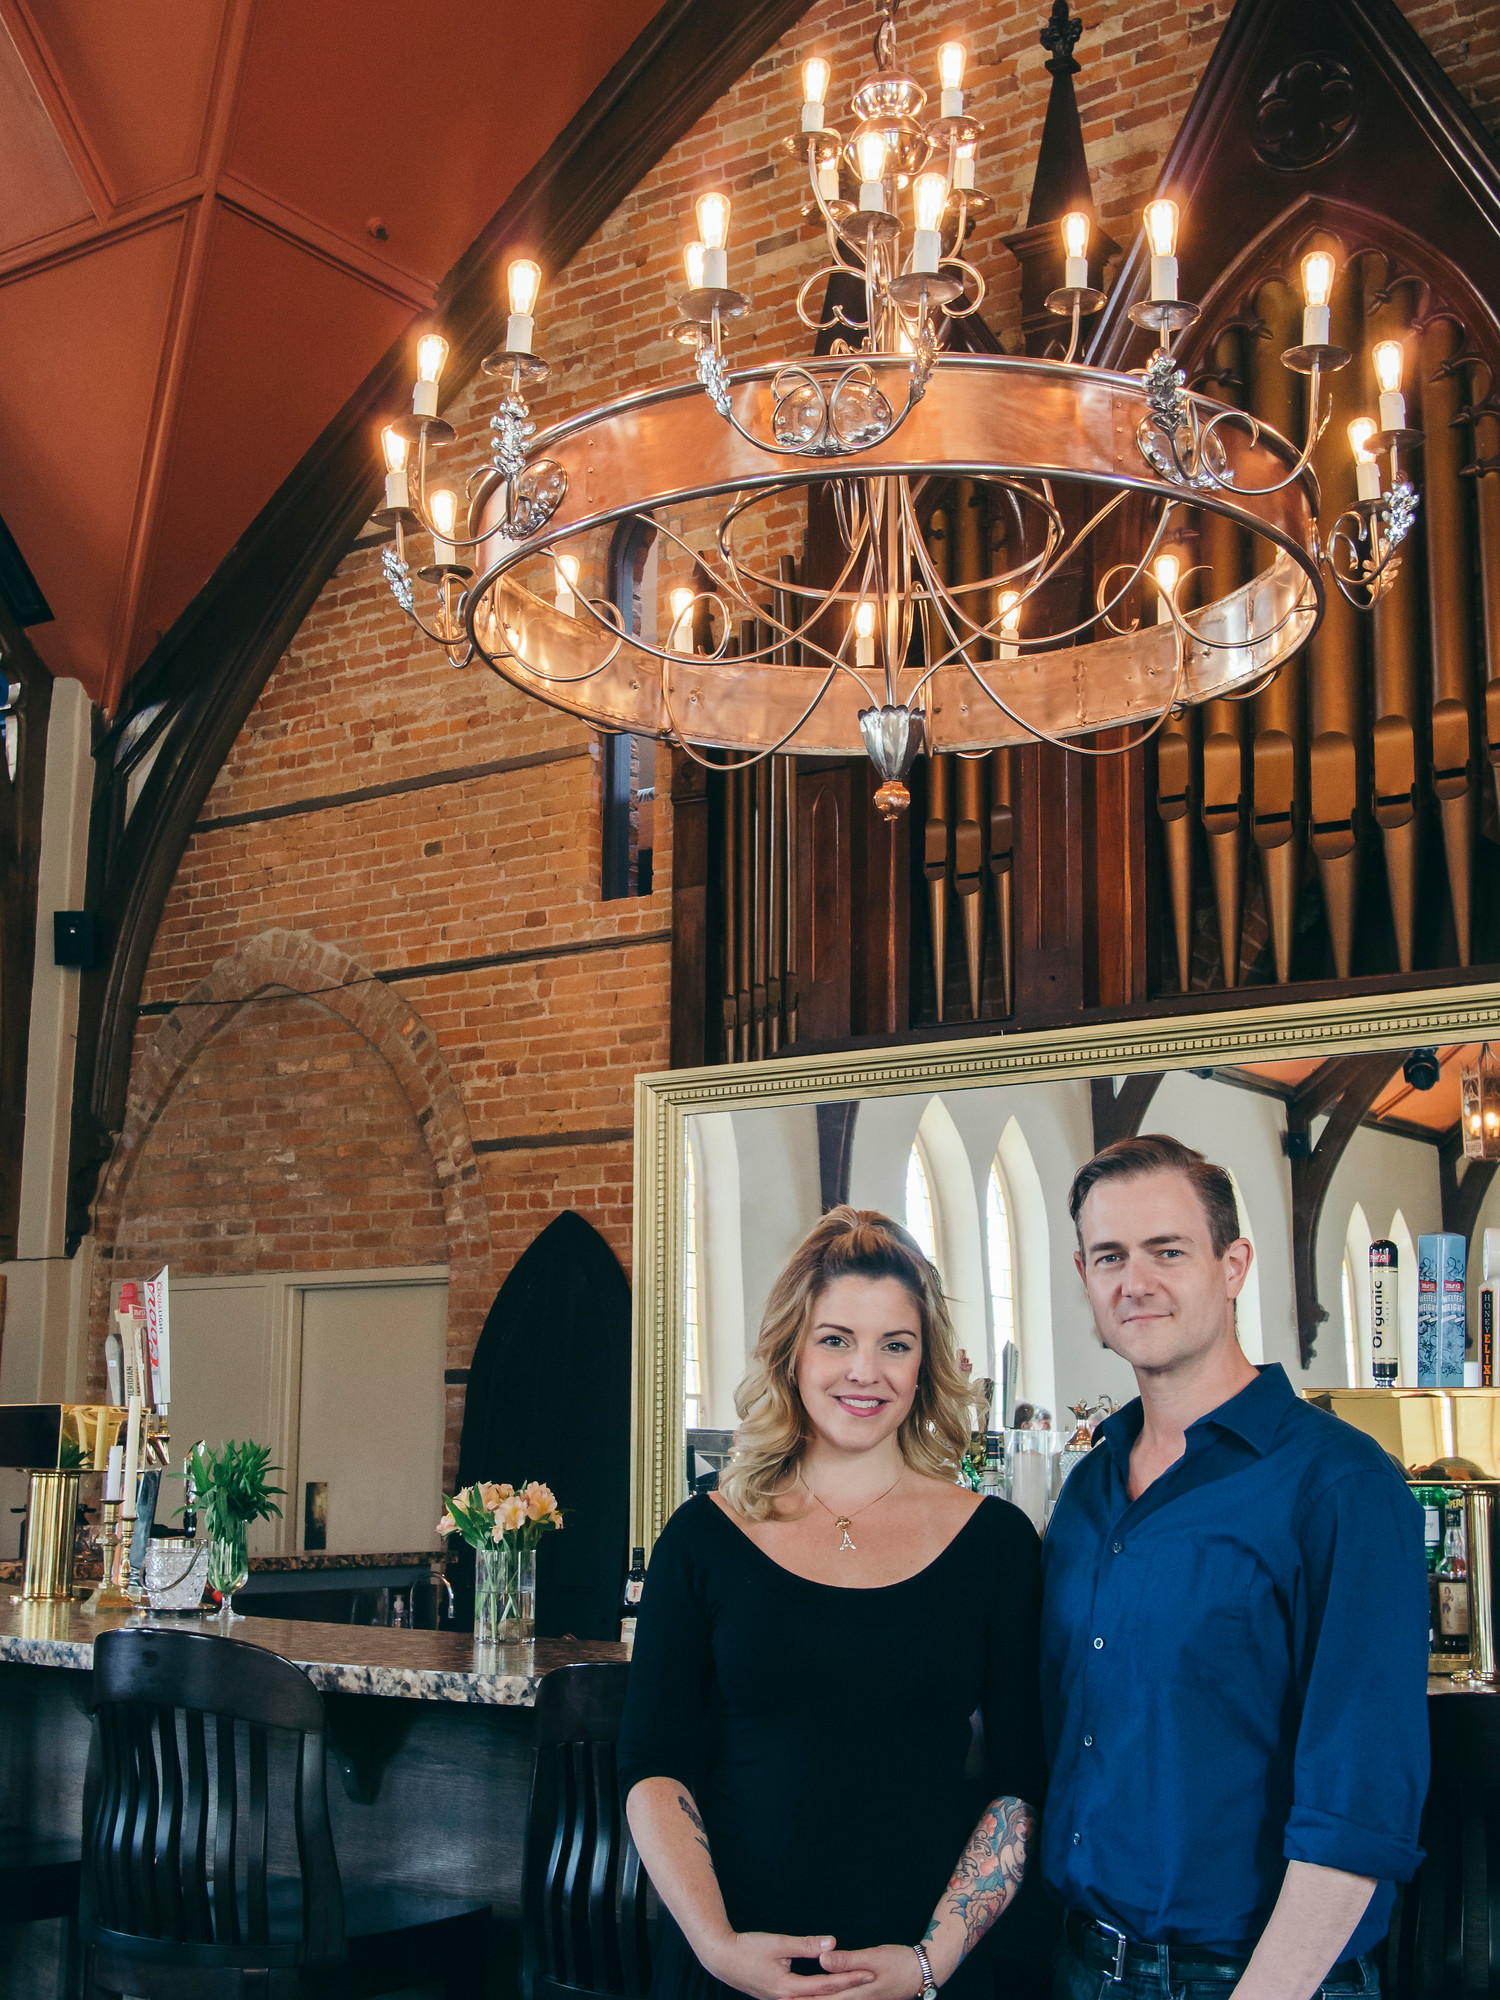 Where to eat in Stratford Ontario includes Revival House - check out our best picks for restaurants, bars and shops.